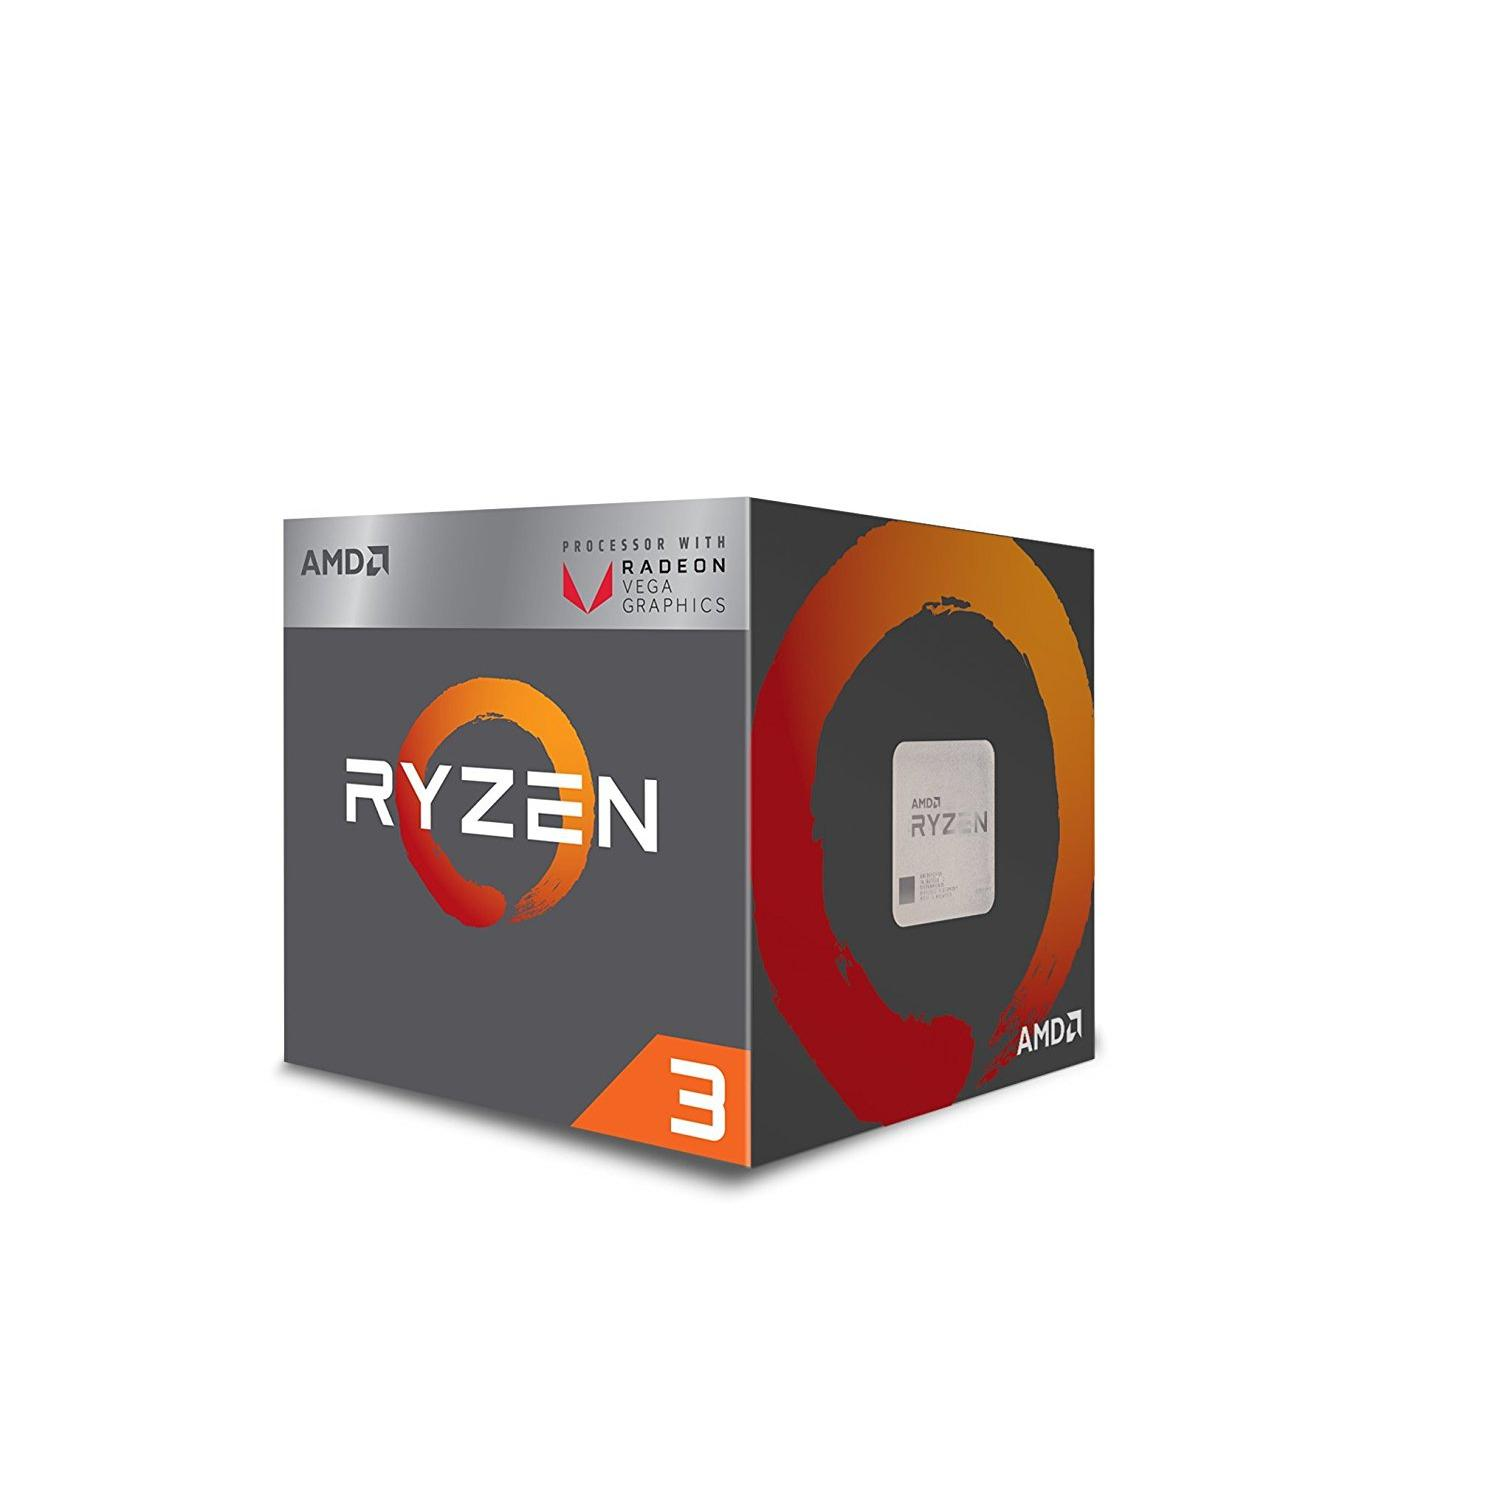 Buy Amd Ryzen 3 2200G 3 7Ghz 4C4T 65W 6Mb Cache Cpu With Radeon Vega 8 Graphics Am4 Socket With Wraith Stealth Cooler